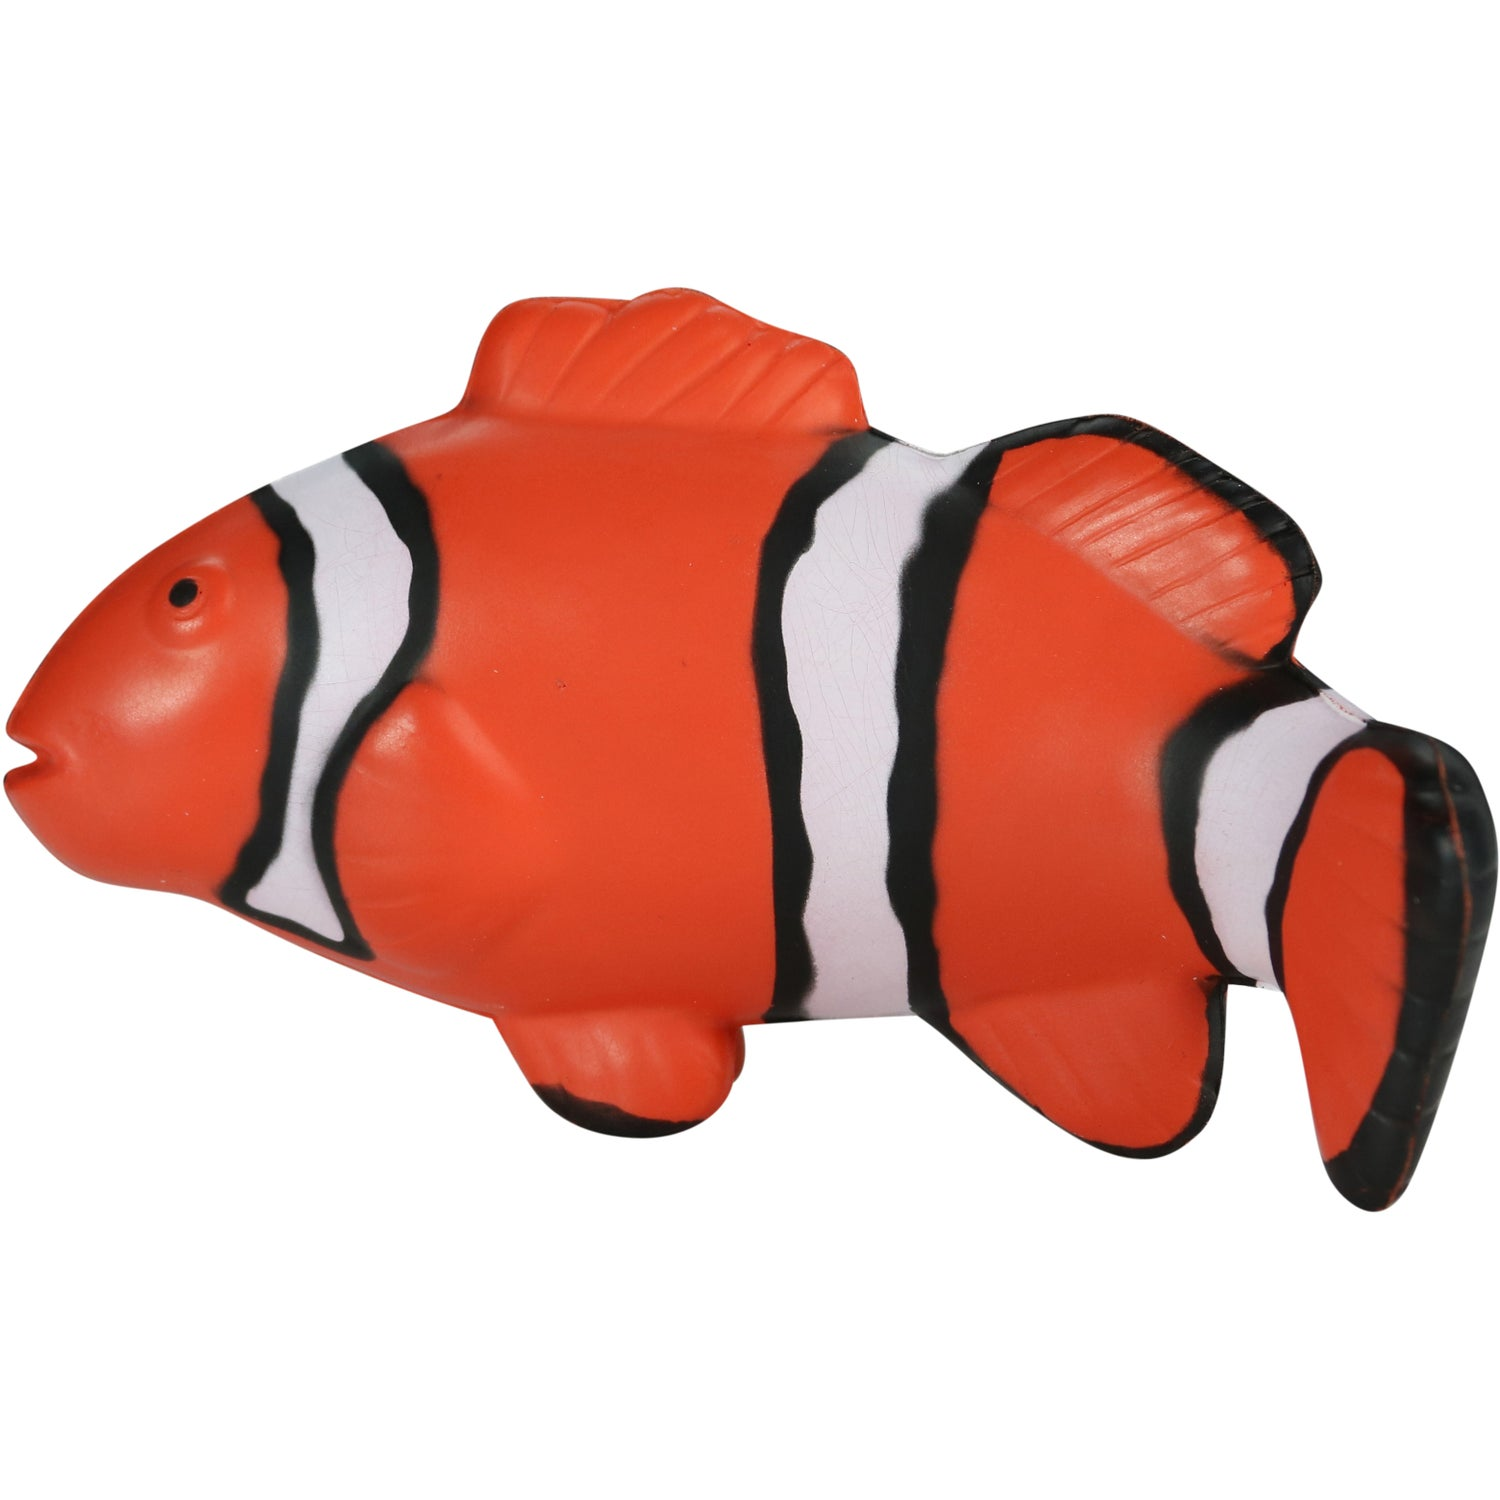 Promotional Clown Fish Stress Toys with Custom Logo for $1.03 Ea.